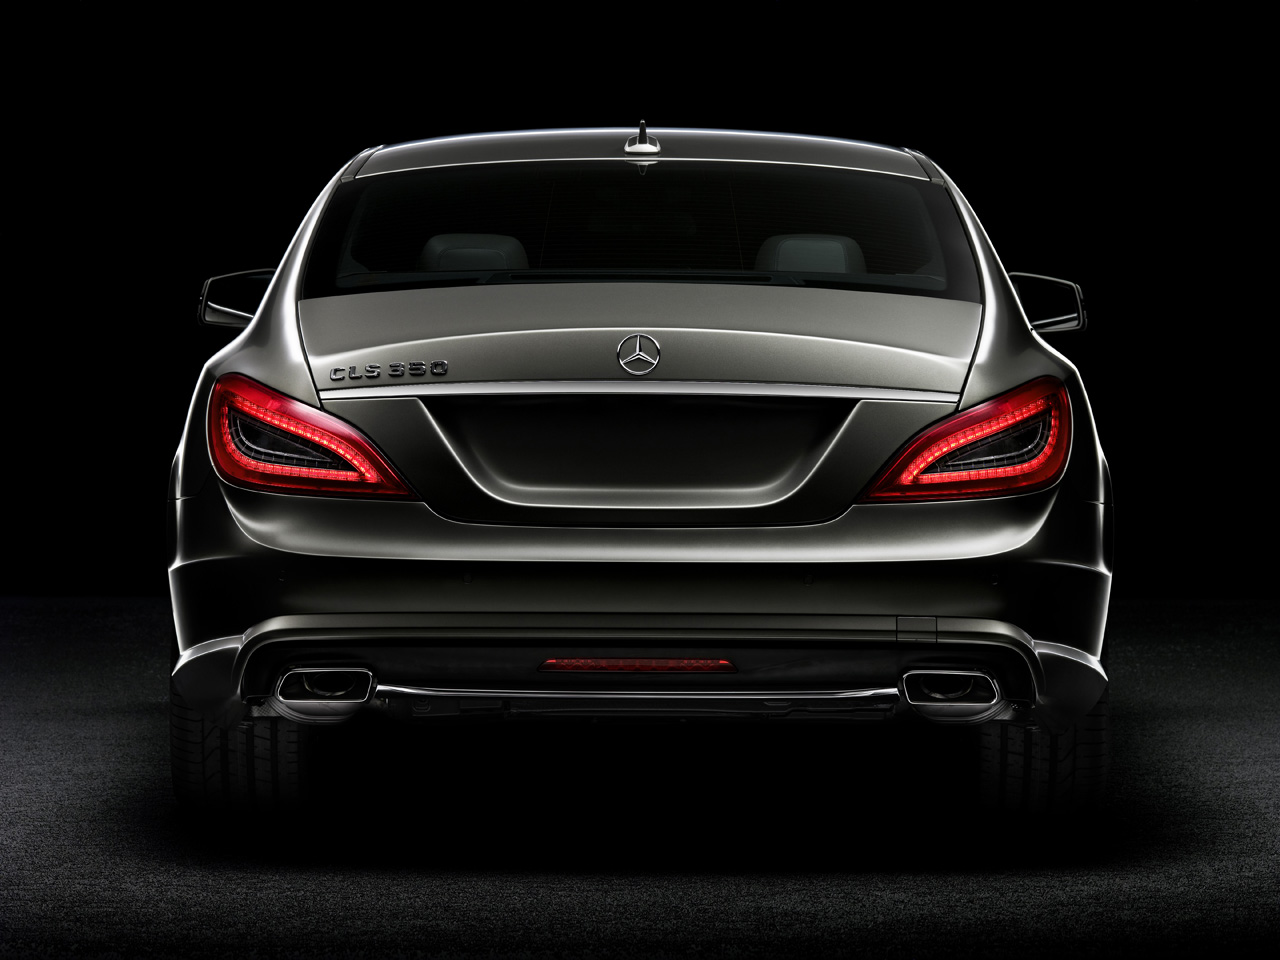 2012 Mercedes Benz CLS Review and Images and Specs title=